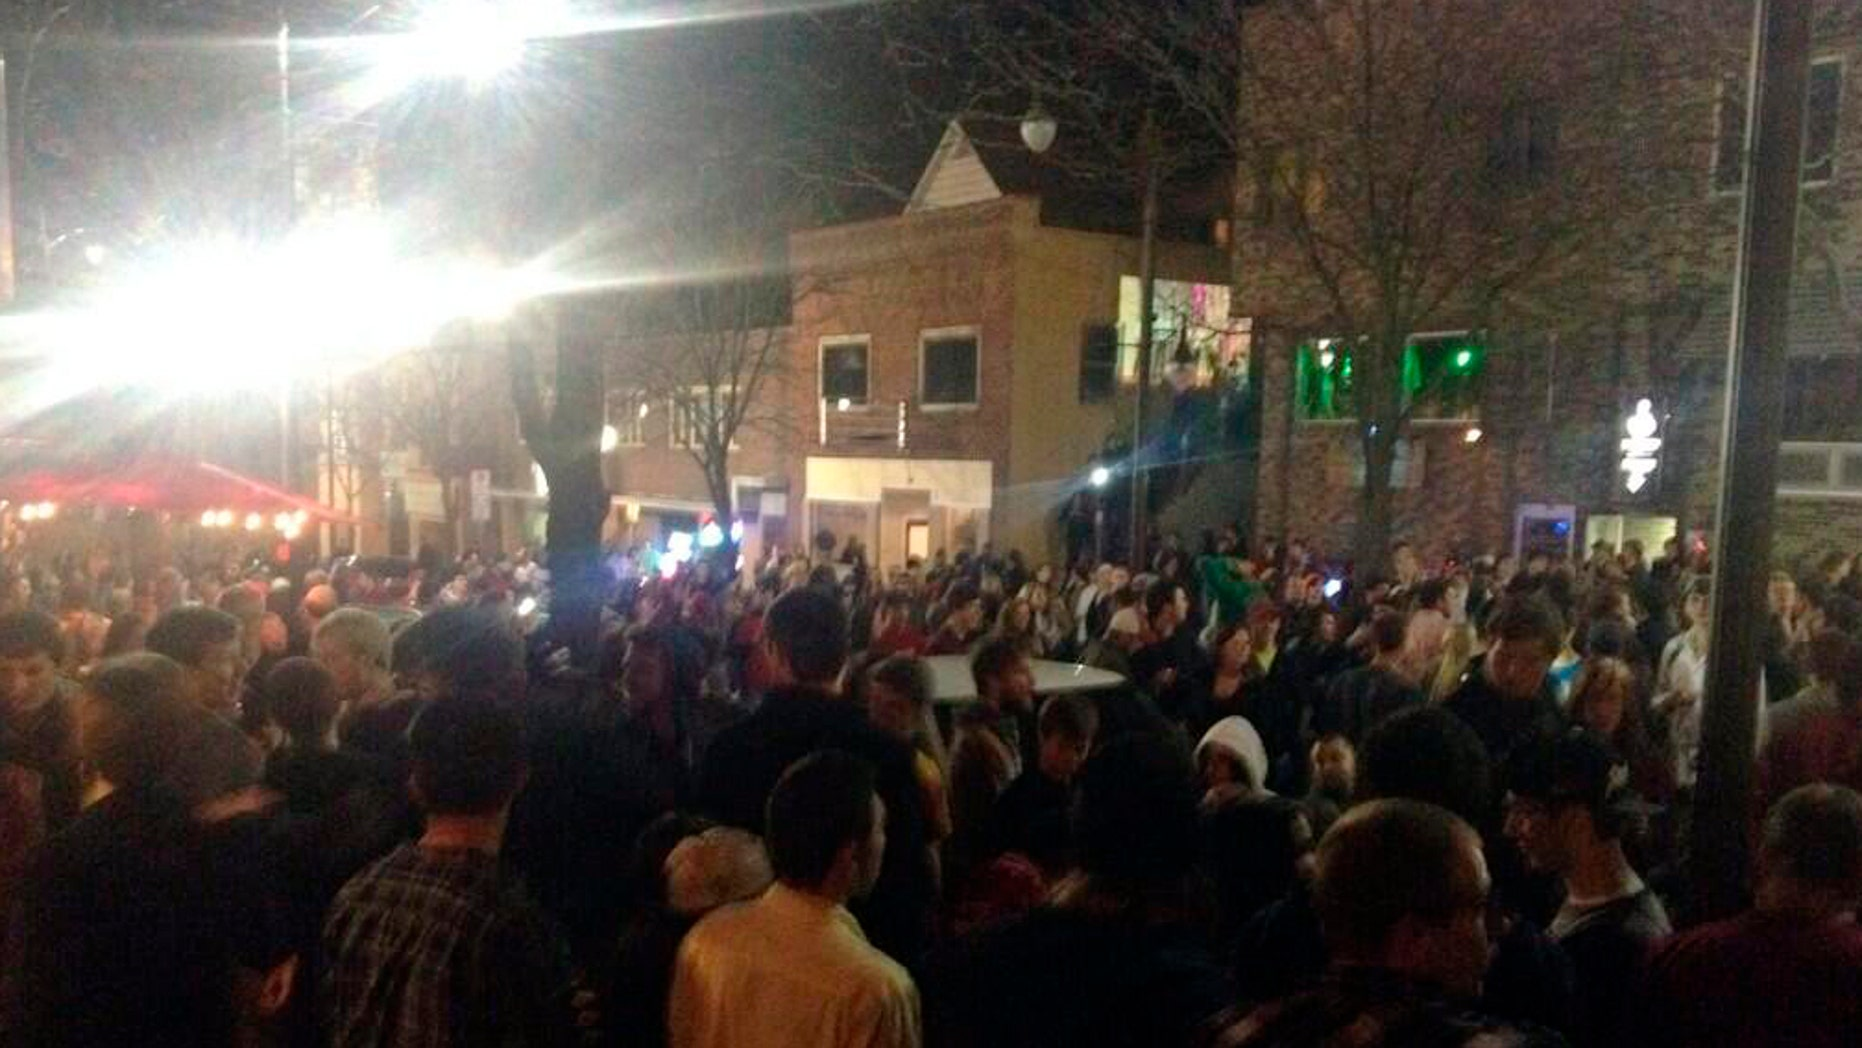 Crowds gathered on Welch Avenue on Tuesday night, April 8, 2014 in the Campustown area of Ames, Iowa. A student was seriously injured after a rowdy crowd overturned cars and toppled light poles near the Iowa State University campus during the annual Veishea celebration designed to showcase the educational establishment, its students and alumni, authorities said Wednesday. (AP Photo/The Des Moines Register, Katherine Klingseis) MAGS OUT, TV OUT, NO SALES, MANDATORY CREDIT